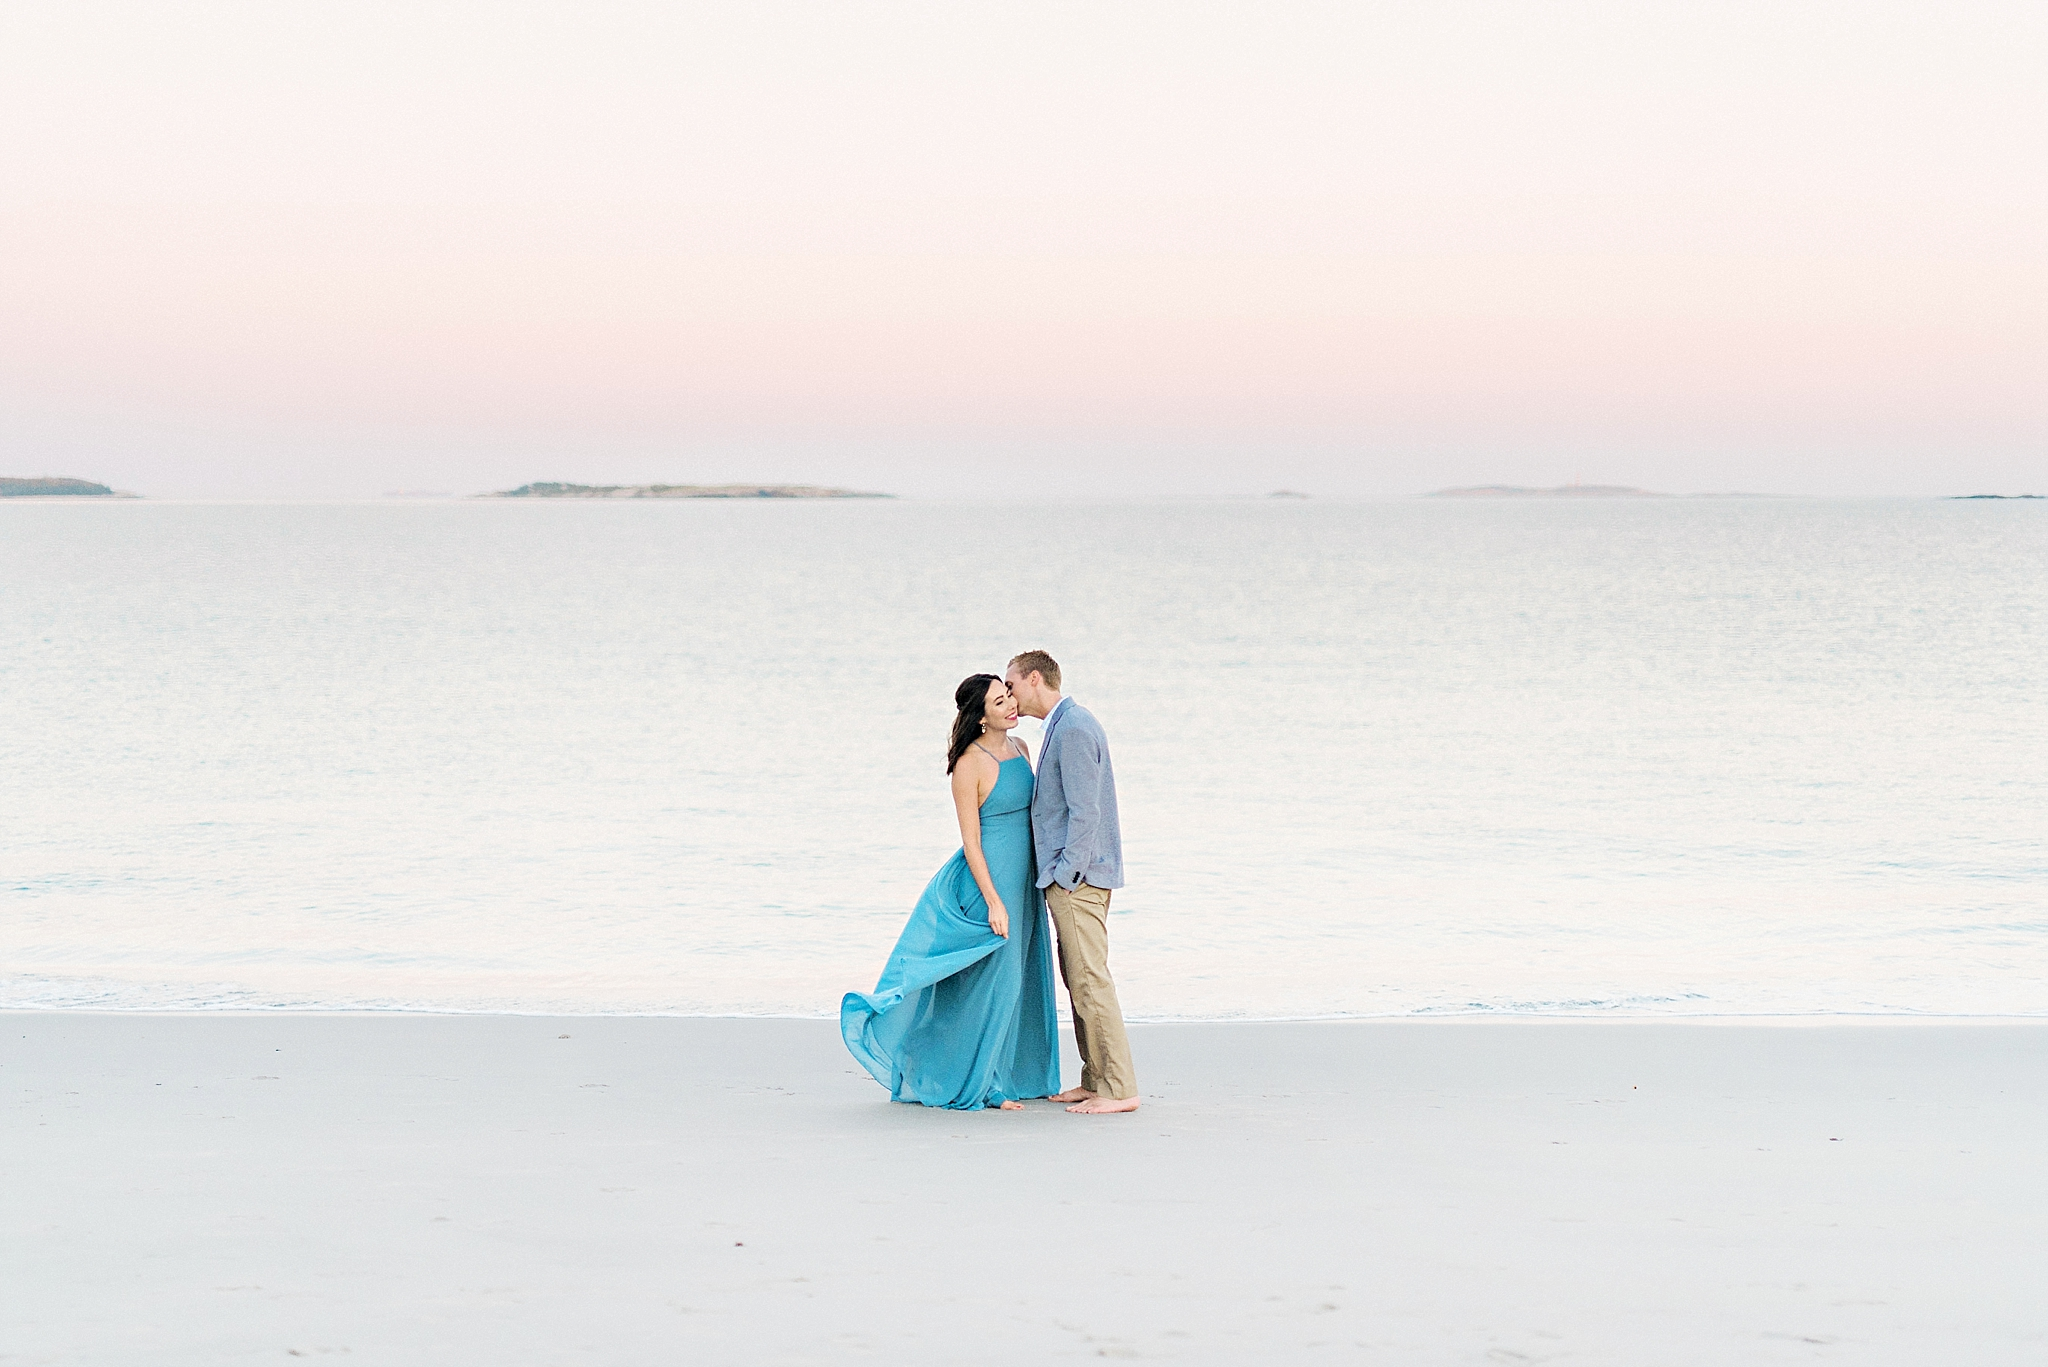 Romantic Seaside Beach Engagement Shoot in Lulu's long flowy maxy dress_037.jpg